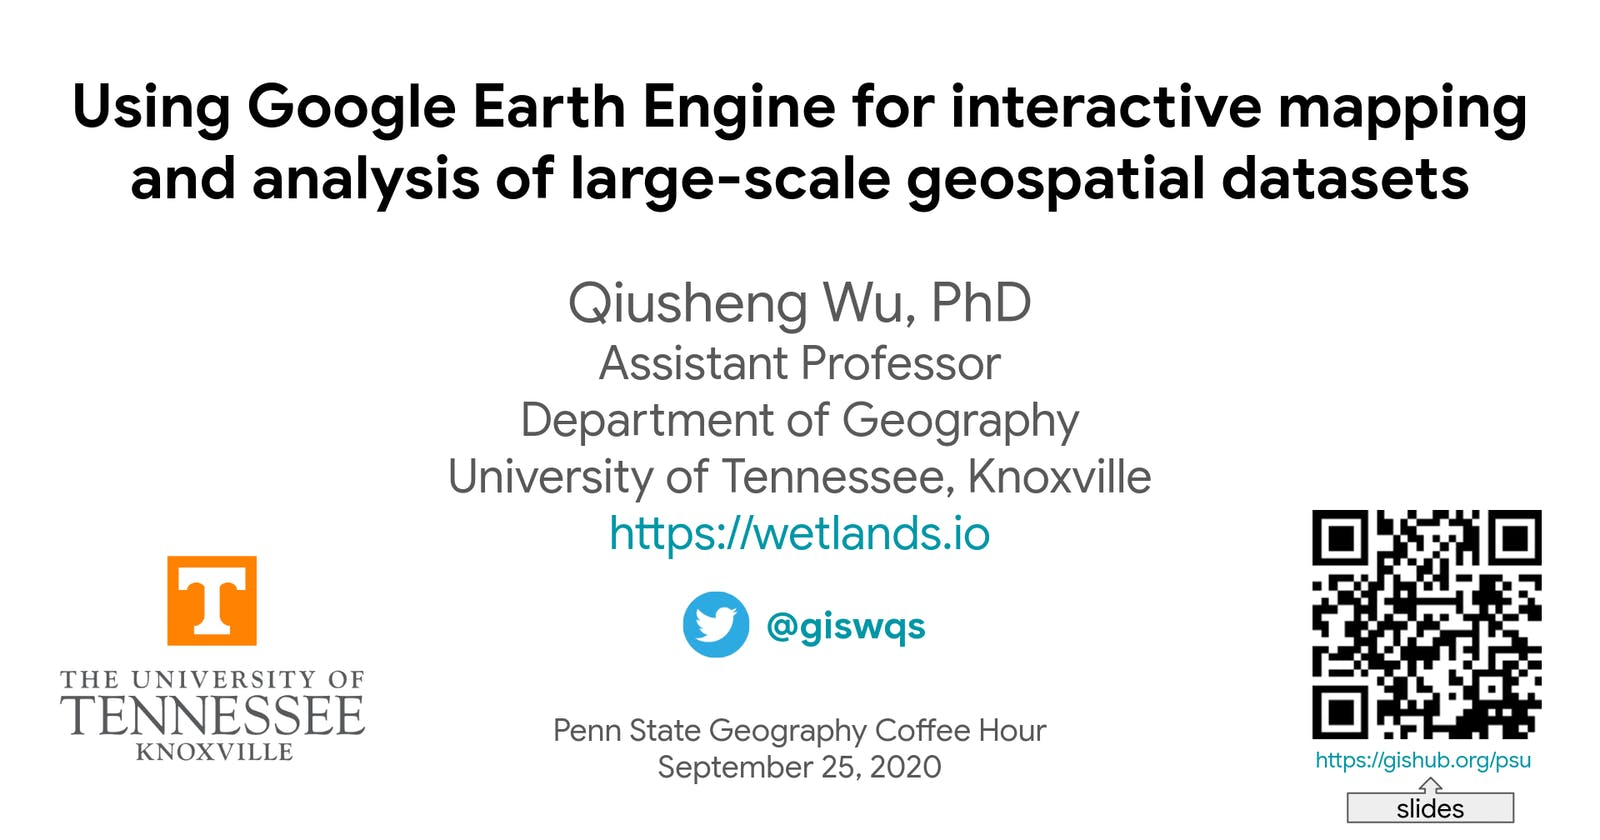 Penn State webinar - Using GEE for interactive mapping & analysis of large-scale geospatial datasets